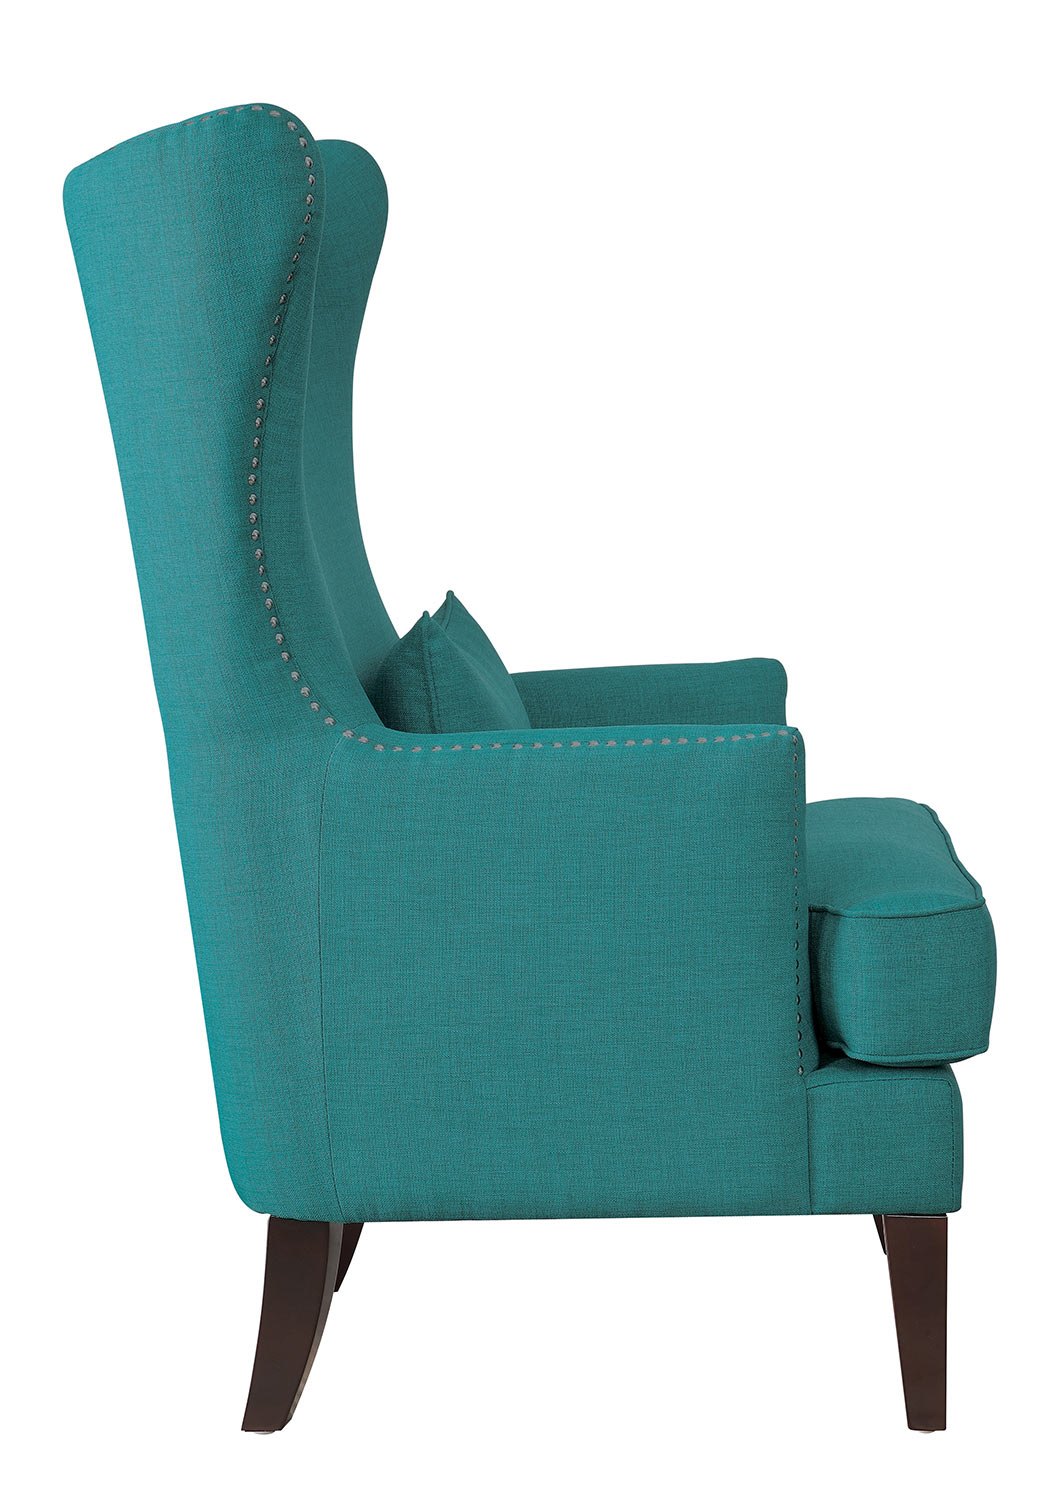 Homelegance Avina Accent Chair - Teal